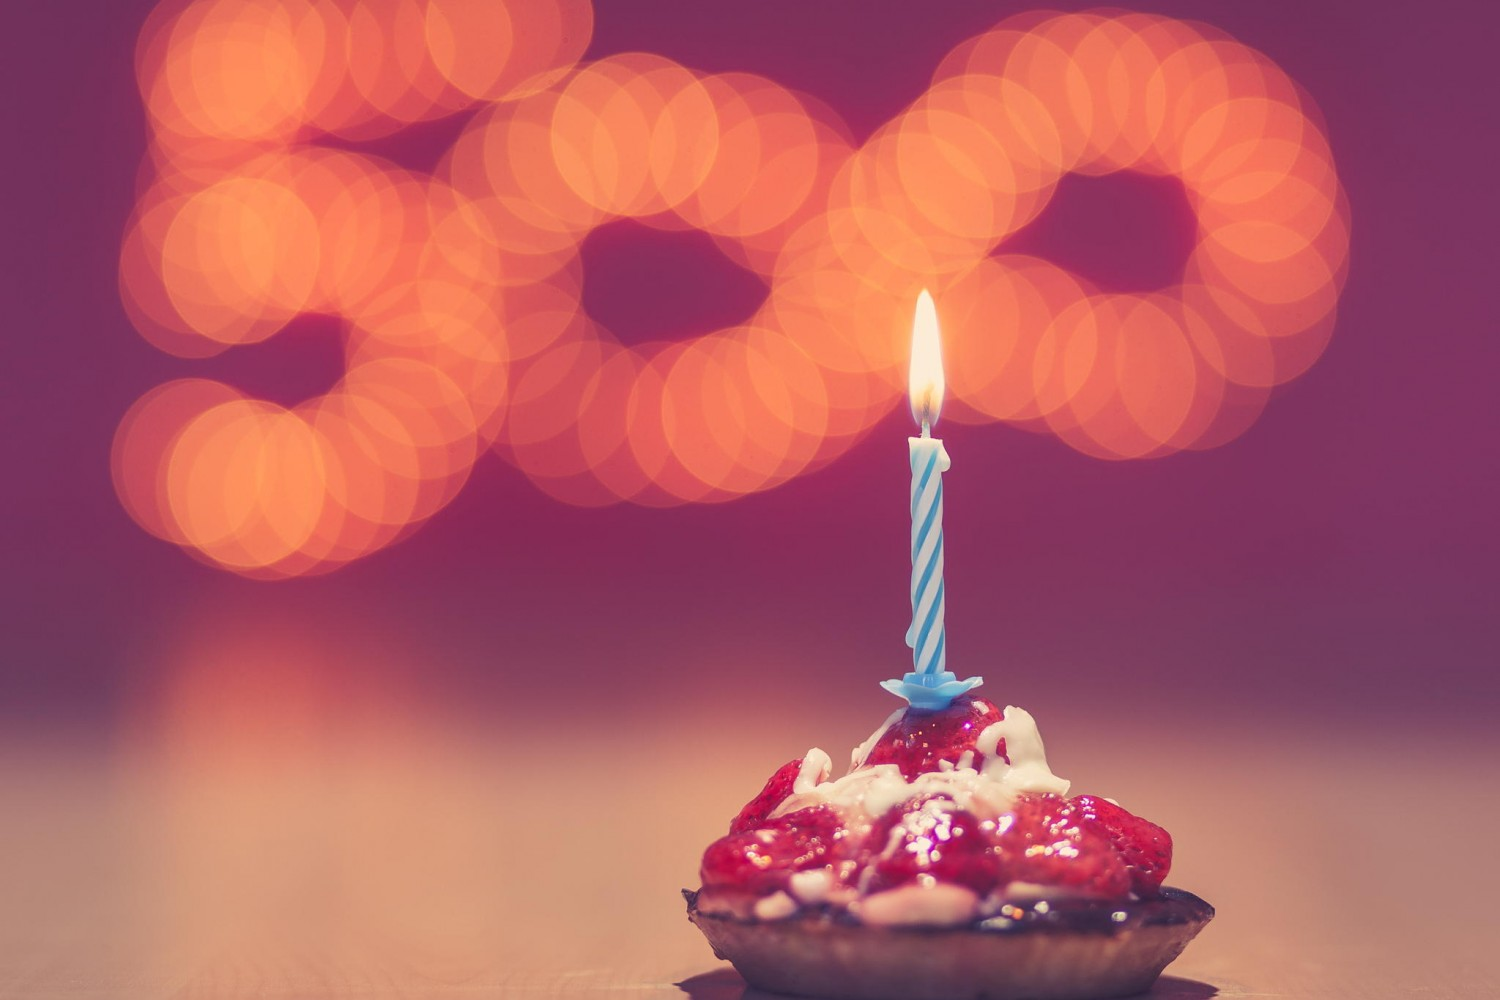 It's 500px's Birthday Month! Enter Our Contest & Win Epic Gifts